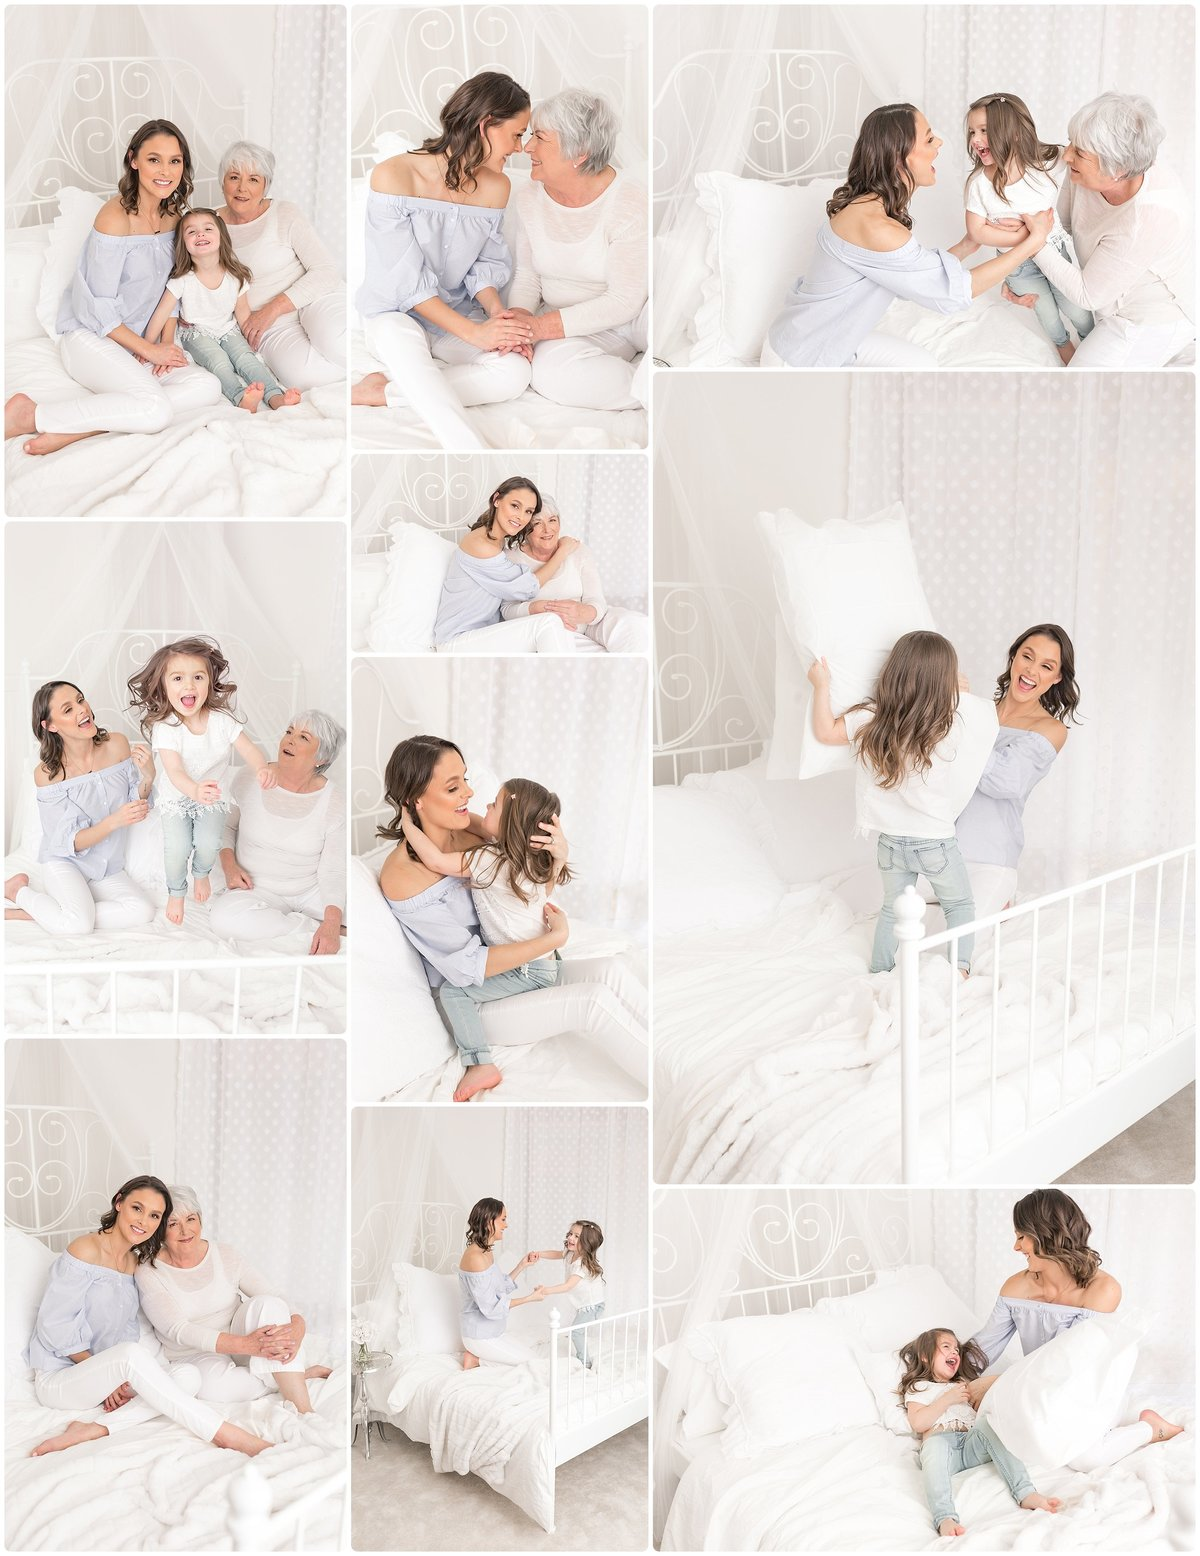 mom and daughter snuggling on white bed